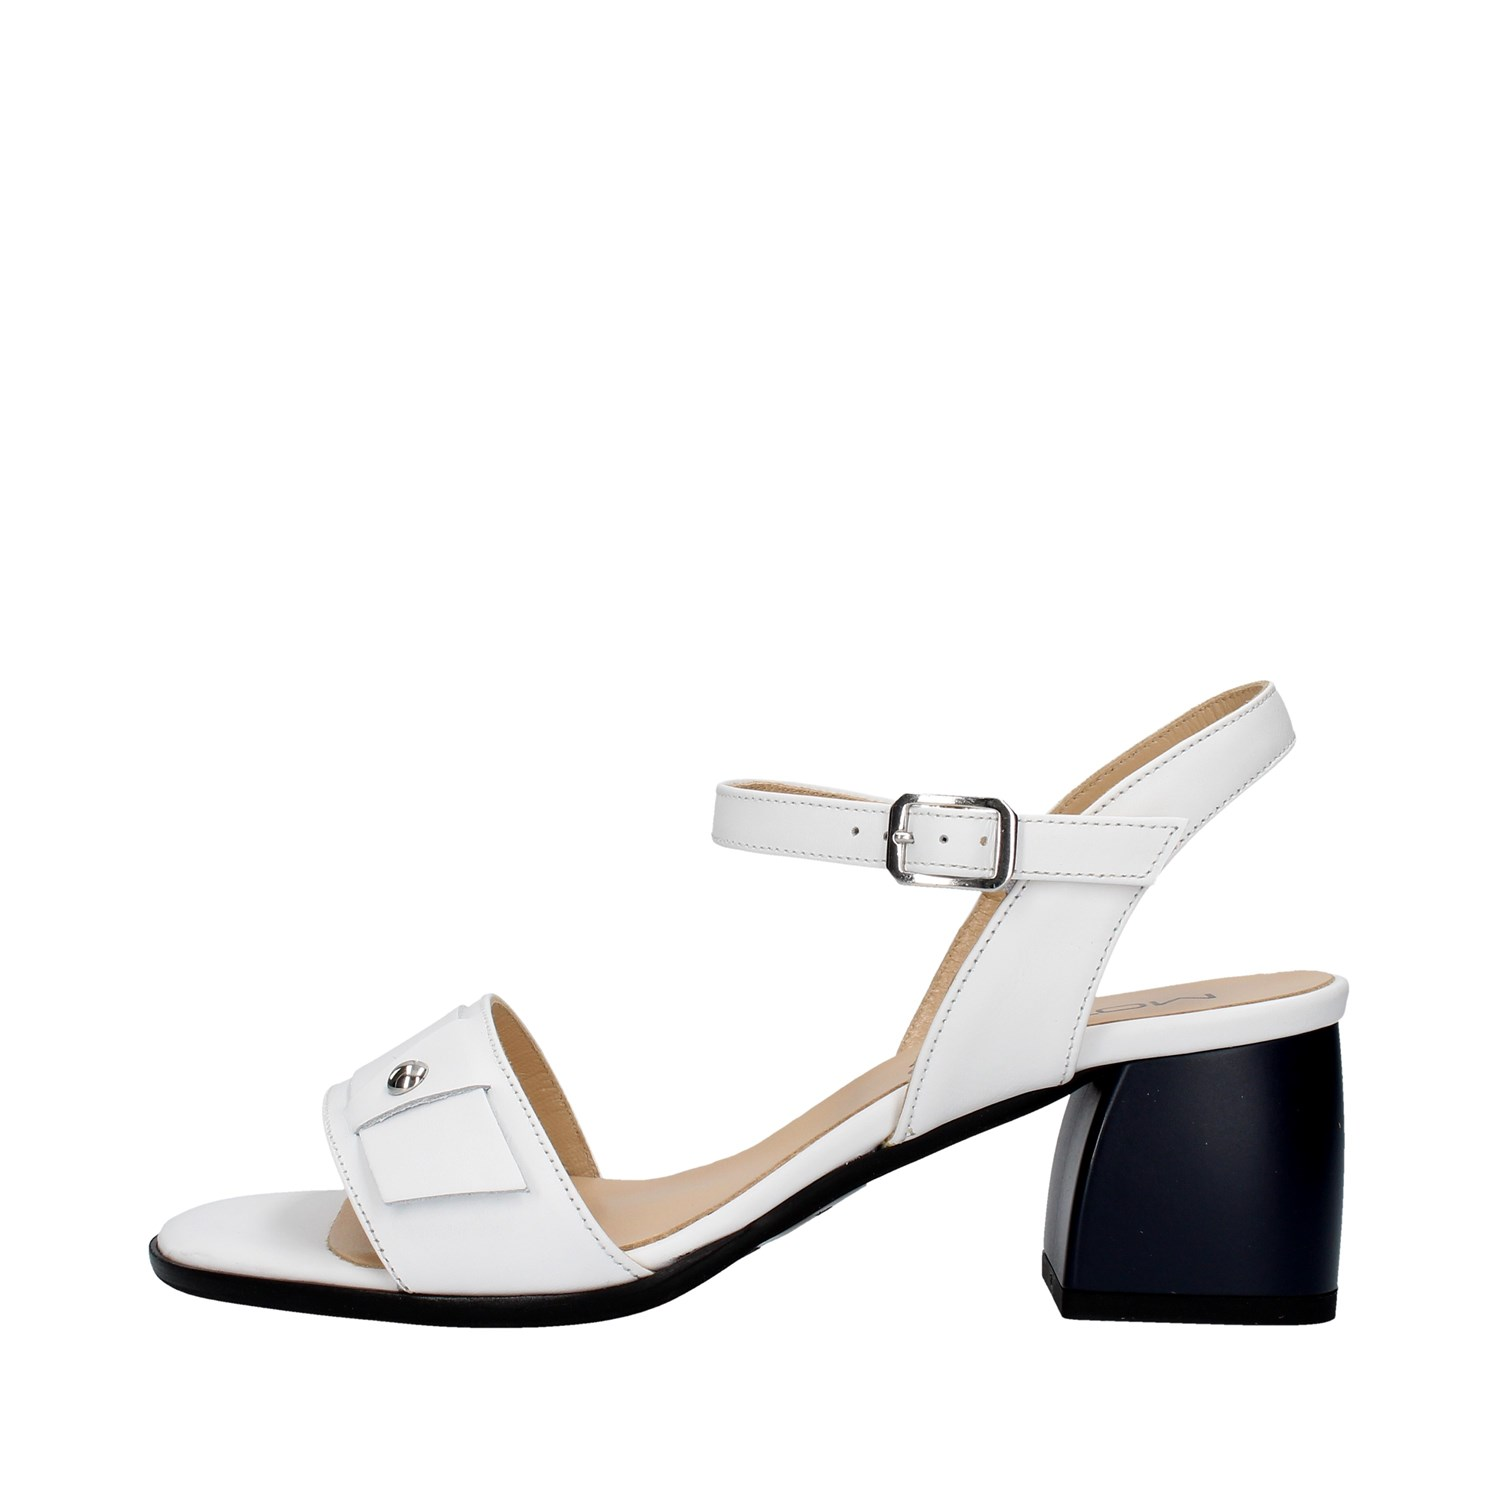 Mot-cle' Shoes Woman With heel WHITE DS0232C